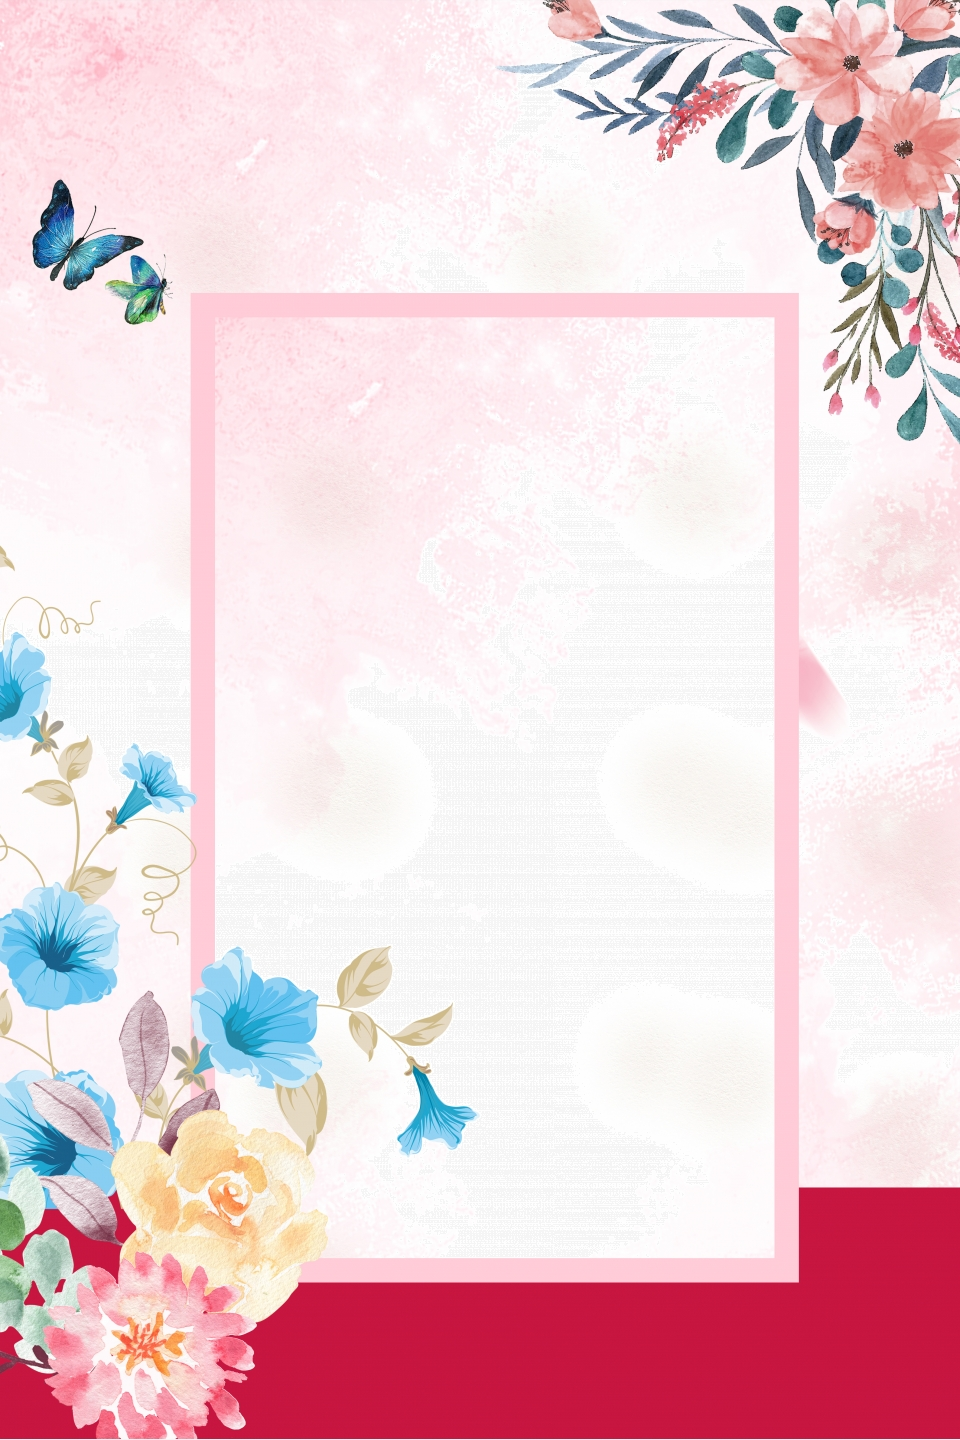 Cosmetics Beauty Salon Manicure Poster Nail Polish Poster Beauty Poster Fashion Background Image For Free Download